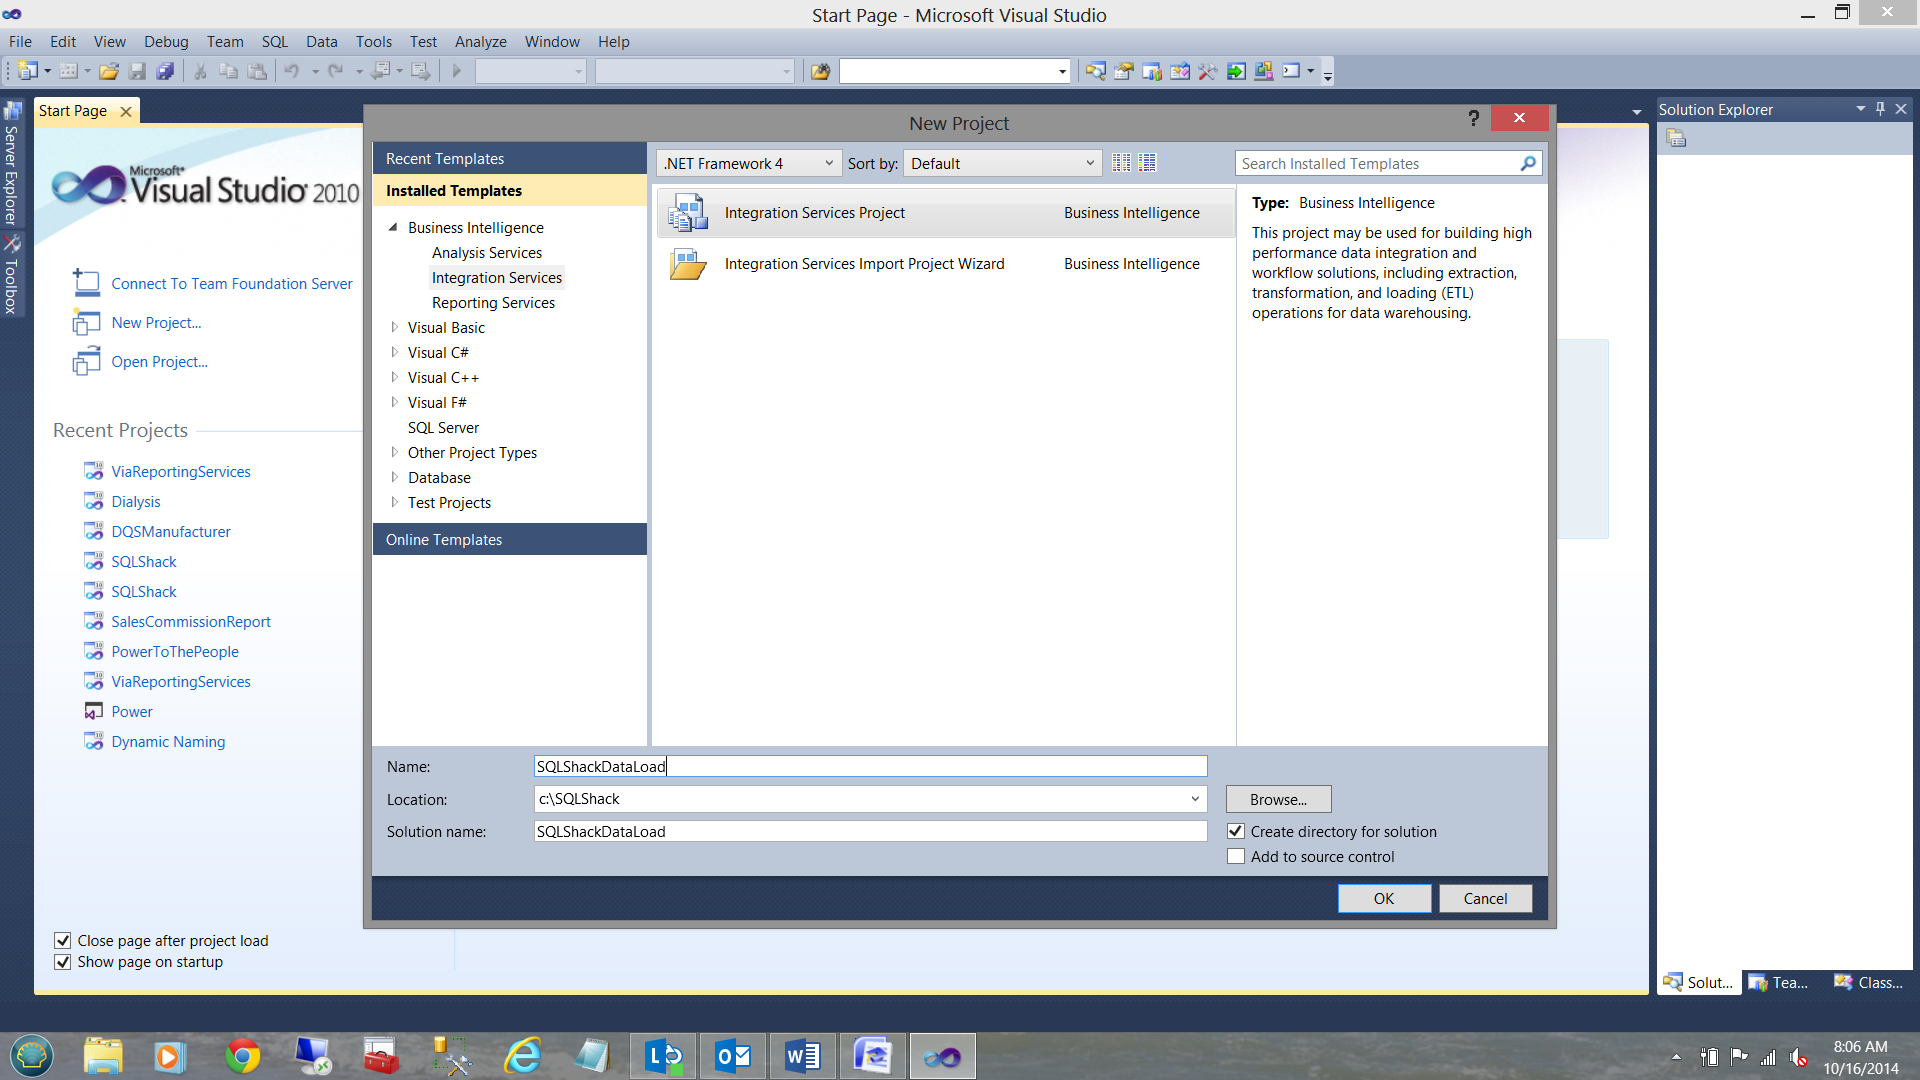 Creating SQL server integration services project